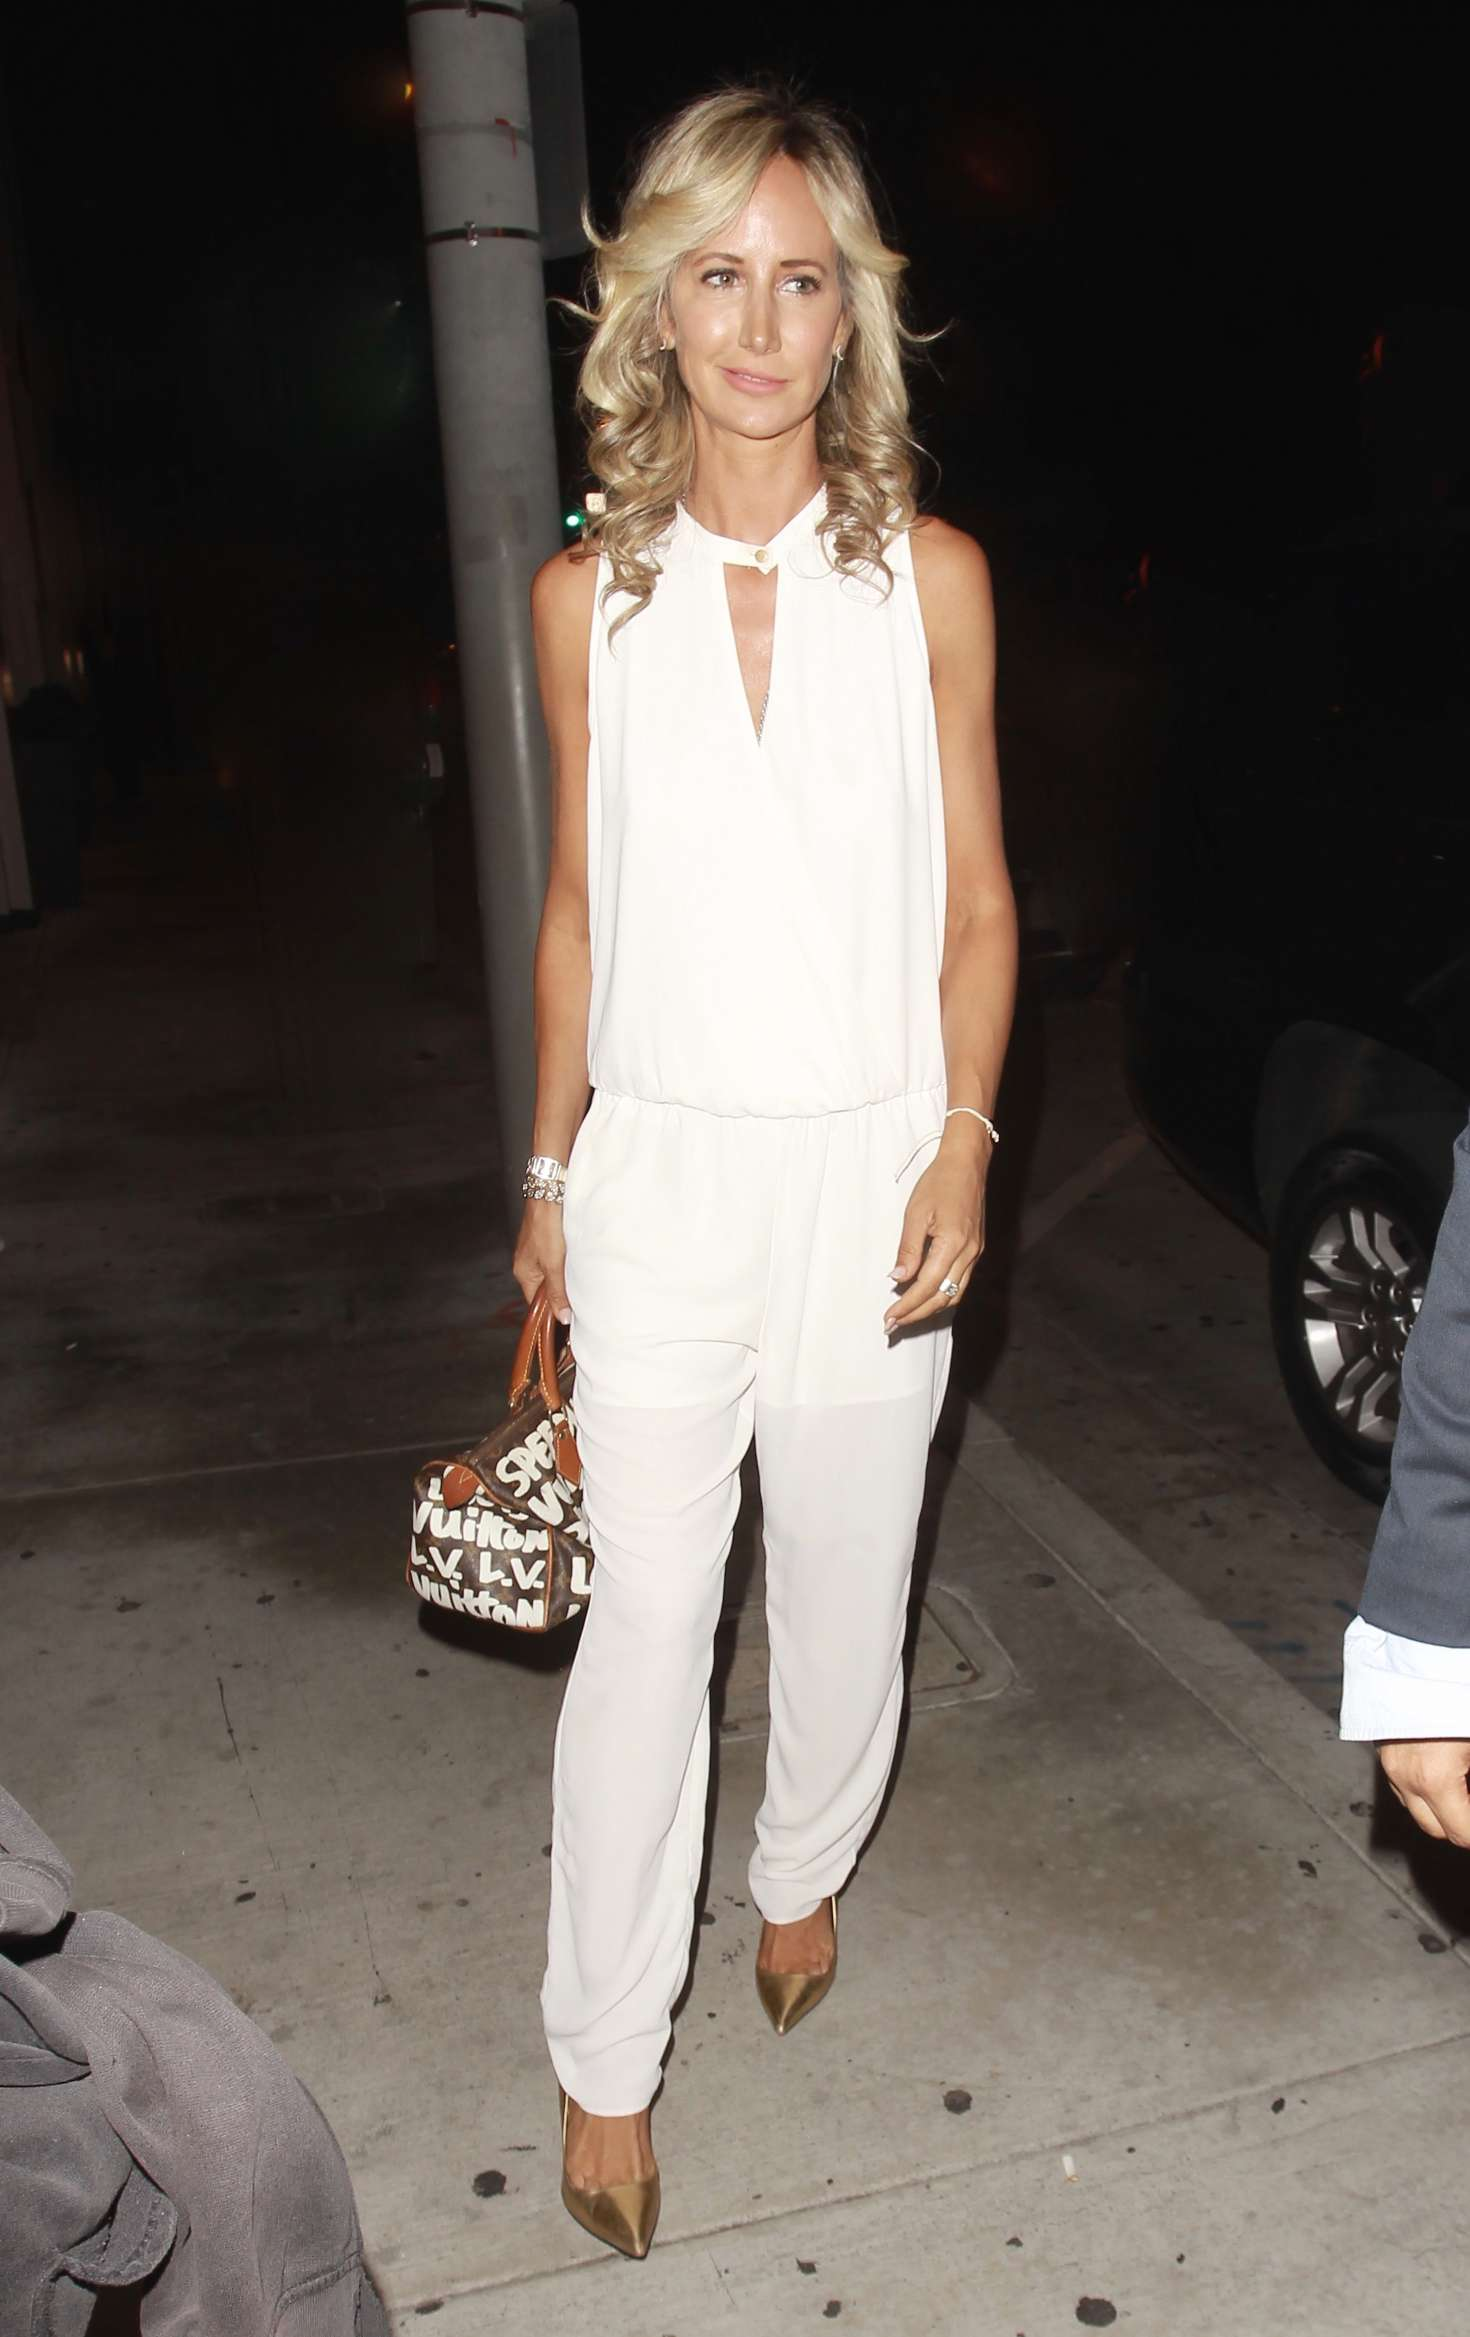 Lady victoria hervey at catch la in west hollywood - 2019 year